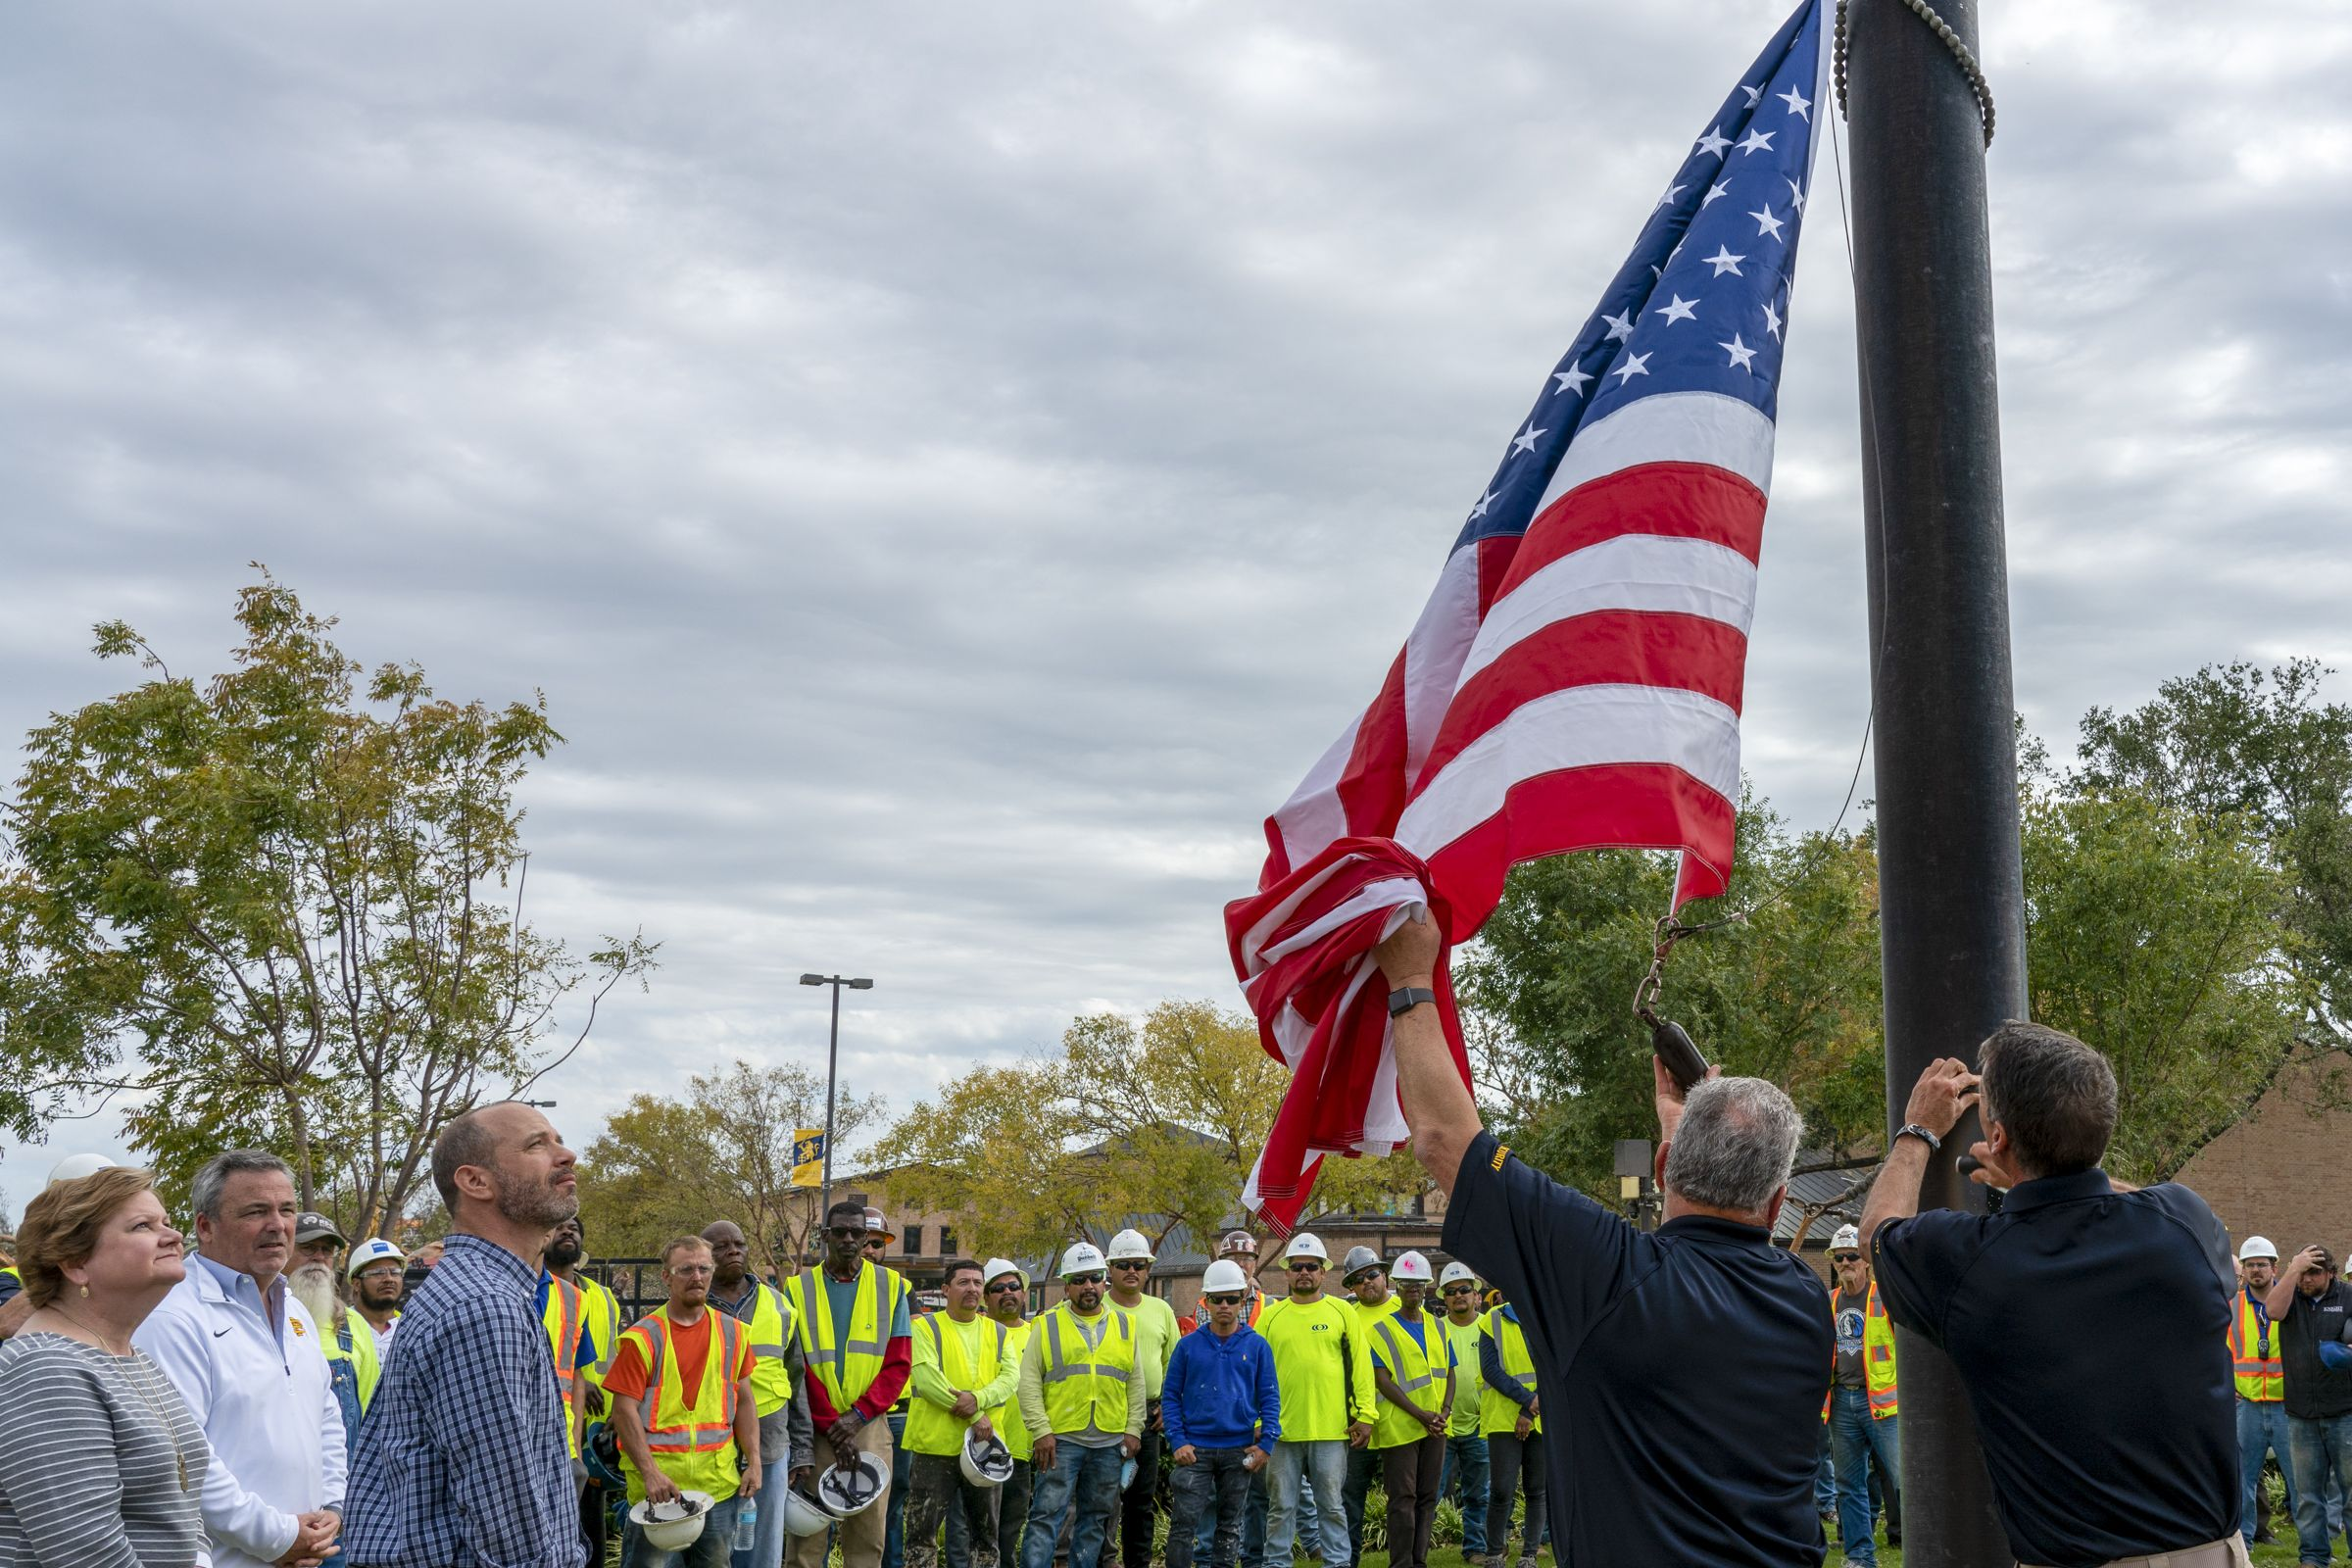 Campus workers and administrators pause to raise the flag on campus for the first time since the tornado struck.